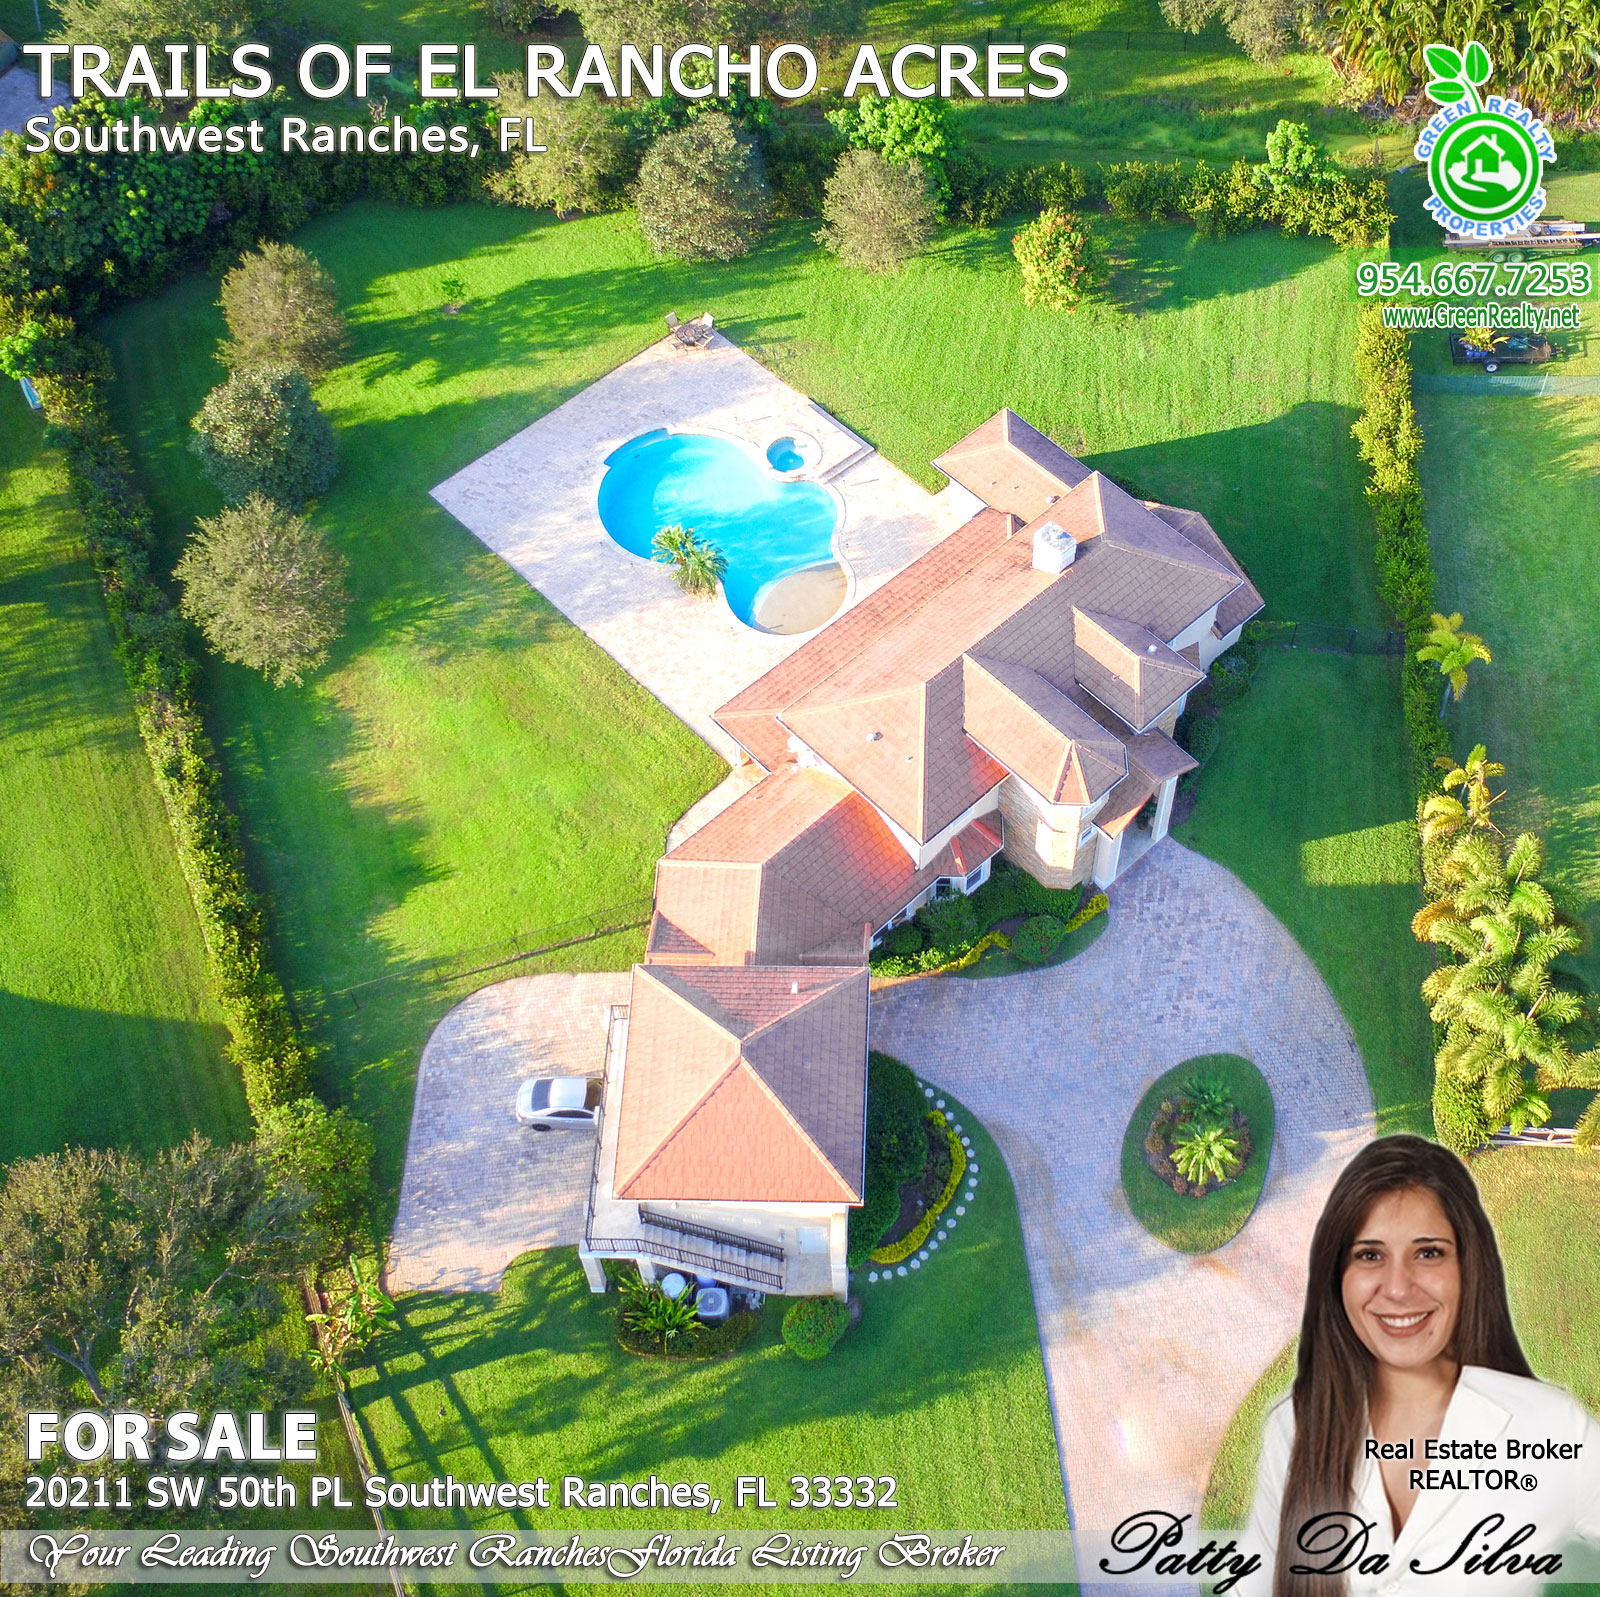 southwest-ranches-real-estate-brokerage-green-realty-properties